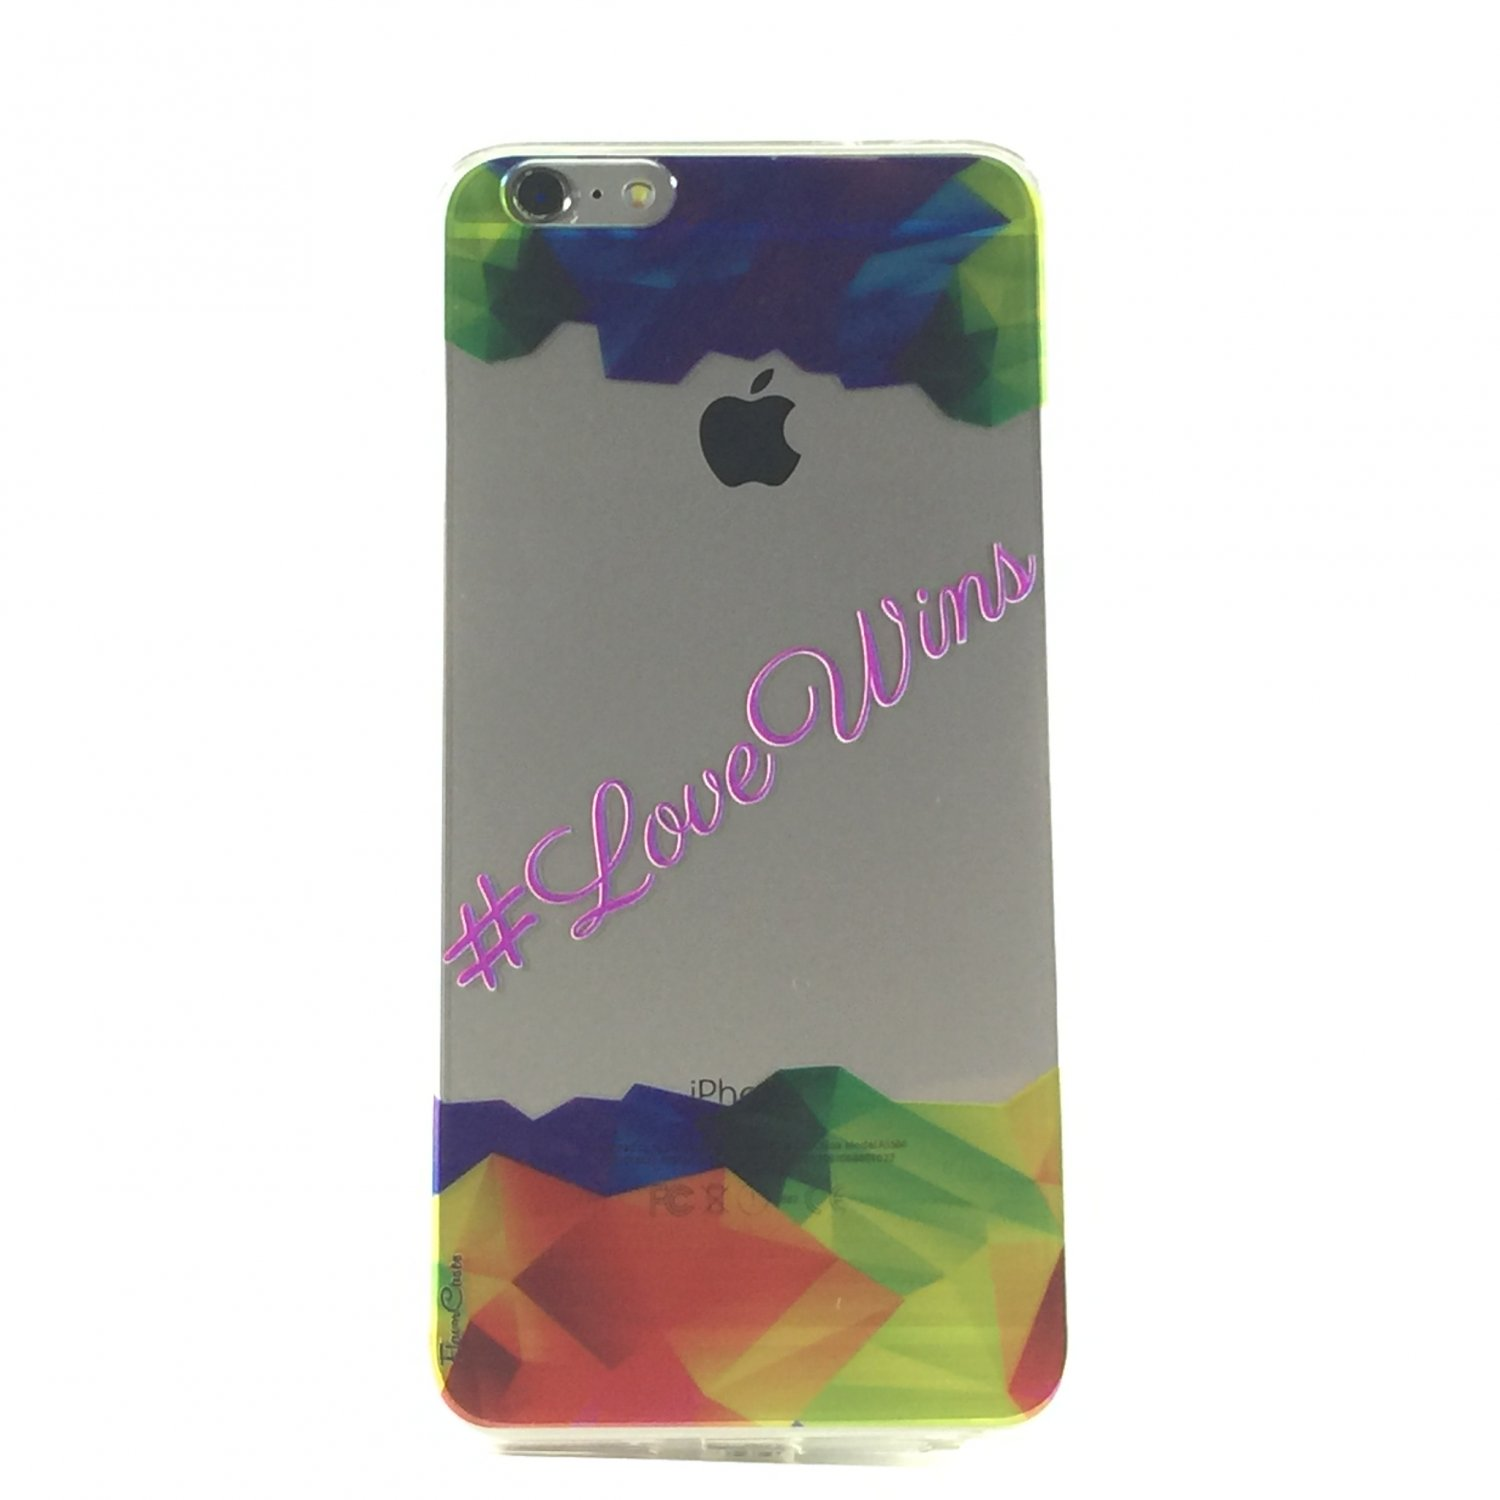 Love Wins - Phases Quotes Cell Phone Case iPhone 6 plus ip6 plus